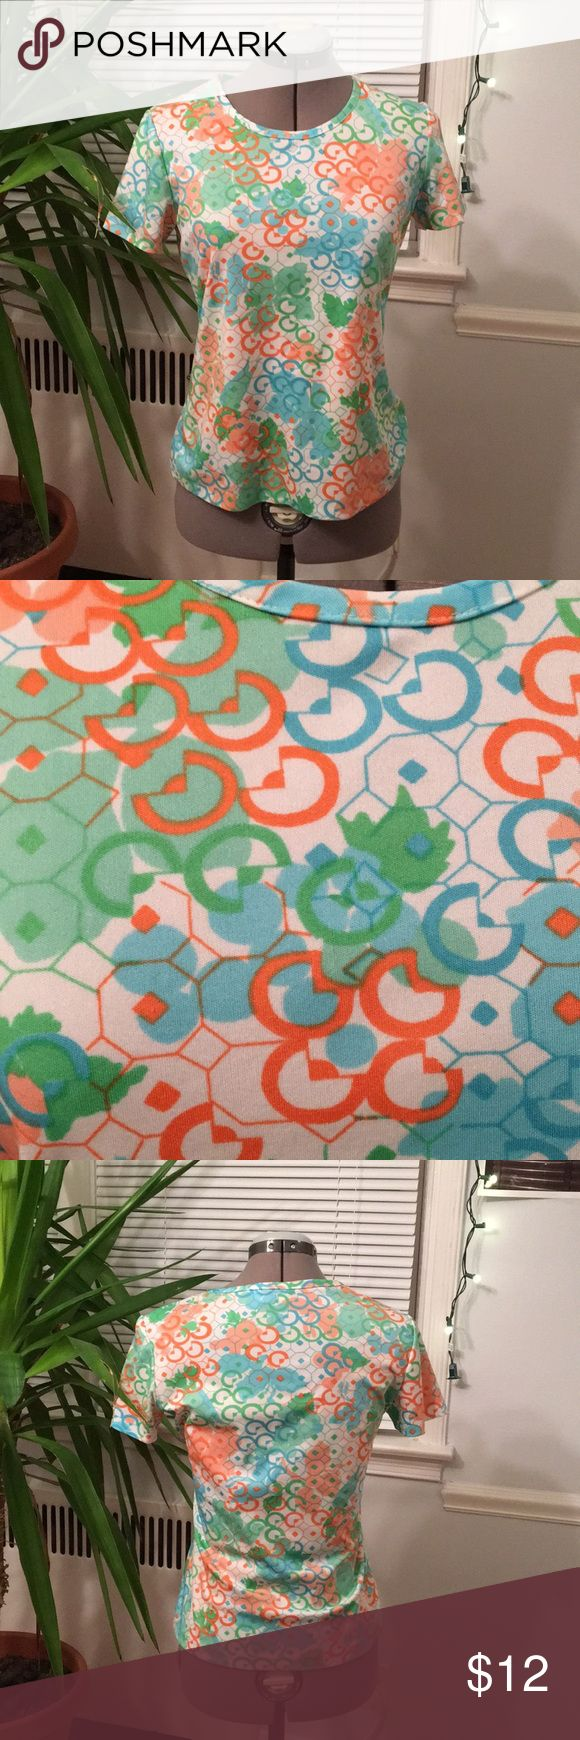 Vintage 70s Geometric Print T-Shirt Vintage tee with bright all over abstract geometric print.  Semicircles, octagons, and squares layer over a floral print in shades or orange, blue, and green. Rounded collar and short sleeves. Tag brand is Moore Bros. Sportwear. Size ladies Small. In good vintage condition, some frayed threads. Moore Bros. Sportswear Tops Tees - Short Sleeve